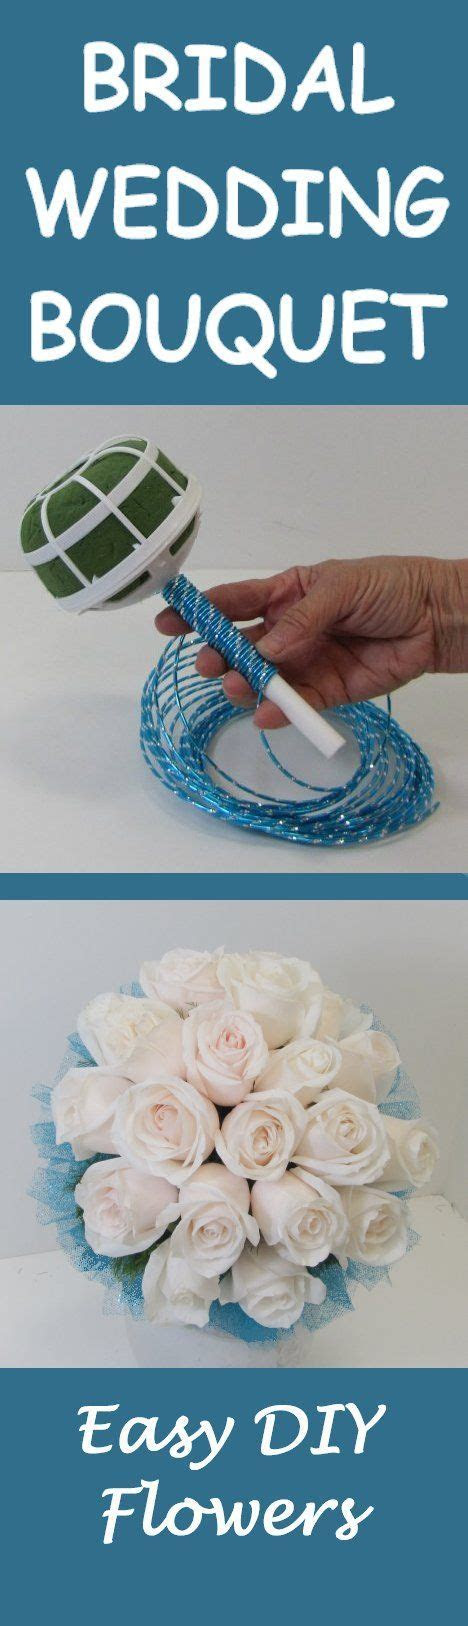 Learn How to Make Your Own Bridal Bouquet   Easy DIY